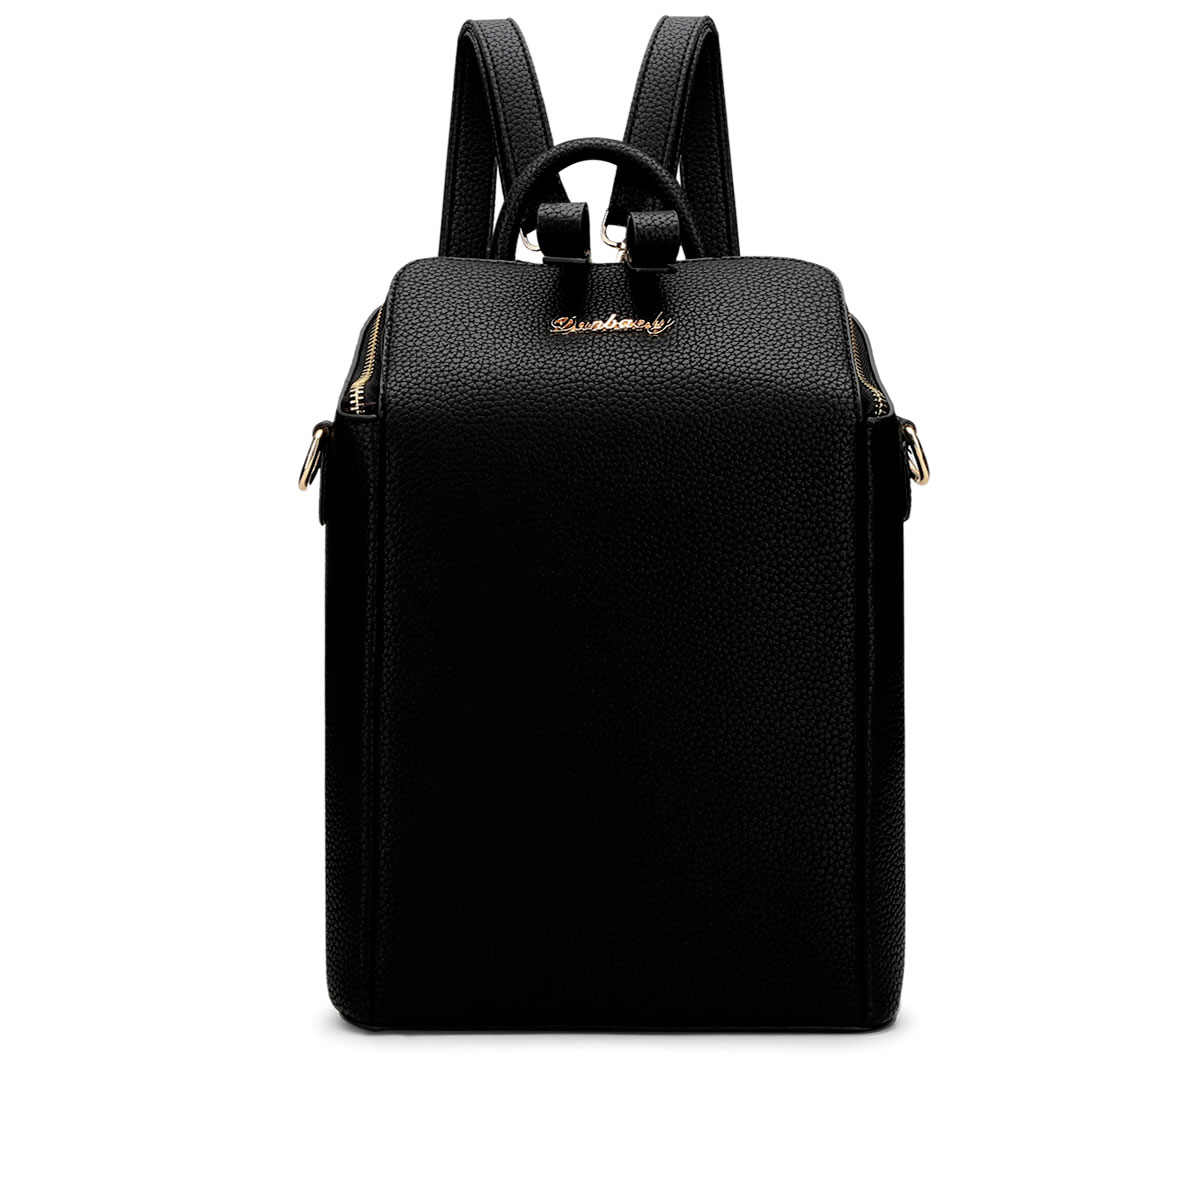 Multifunction waterproof women cylindrical vertical section female bag 10 inch computer bag soft surface diagonal tote back packMultifunction waterproof women cylindrical vertical section female bag 10 inch computer bag soft surface diagonal tote back pack